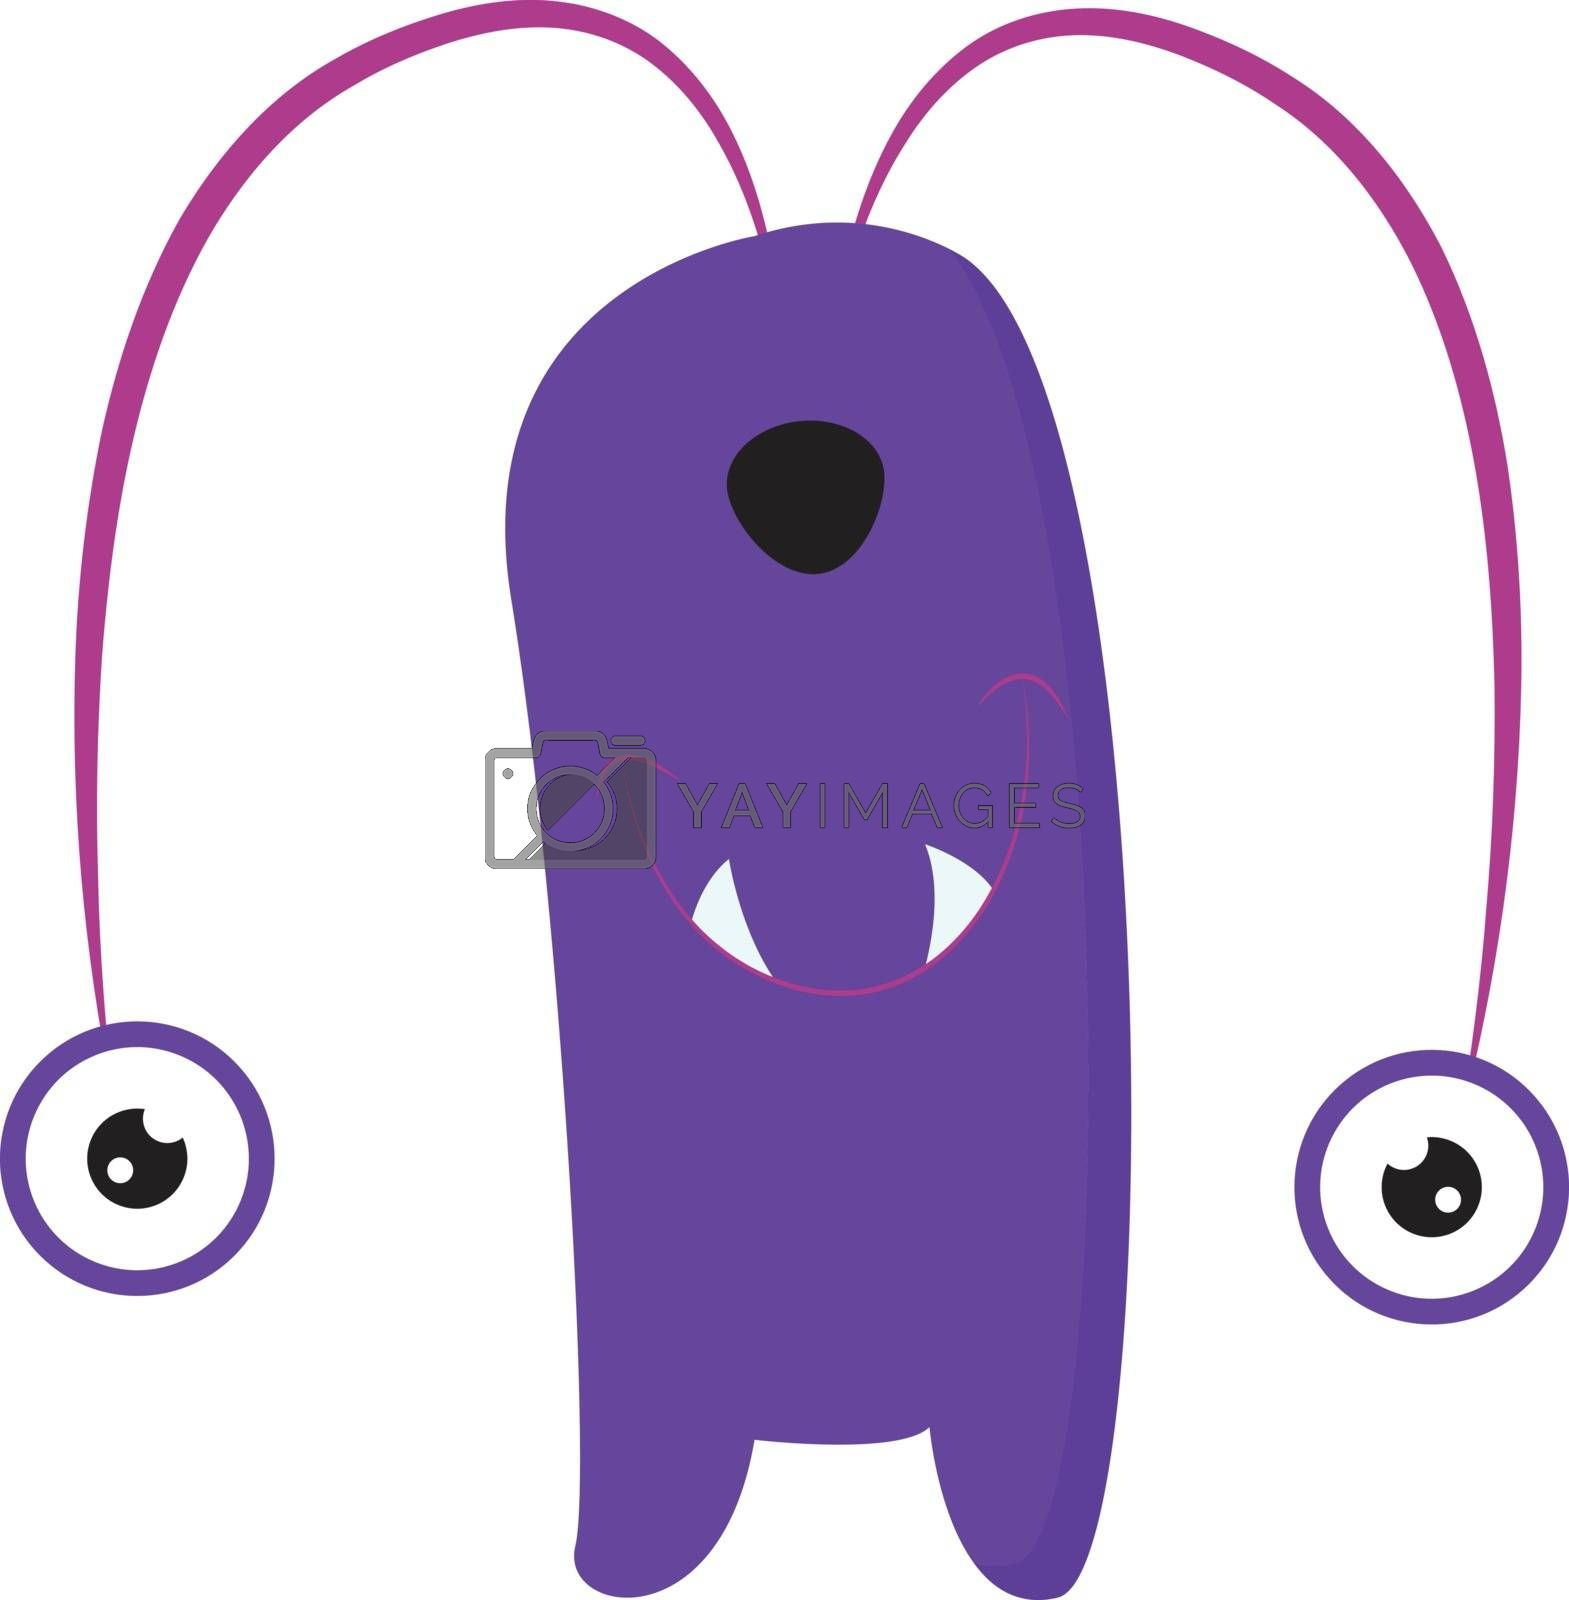 Royalty free image of Cartoon funny purple monster with two round eyes hanging down ve by Morphart